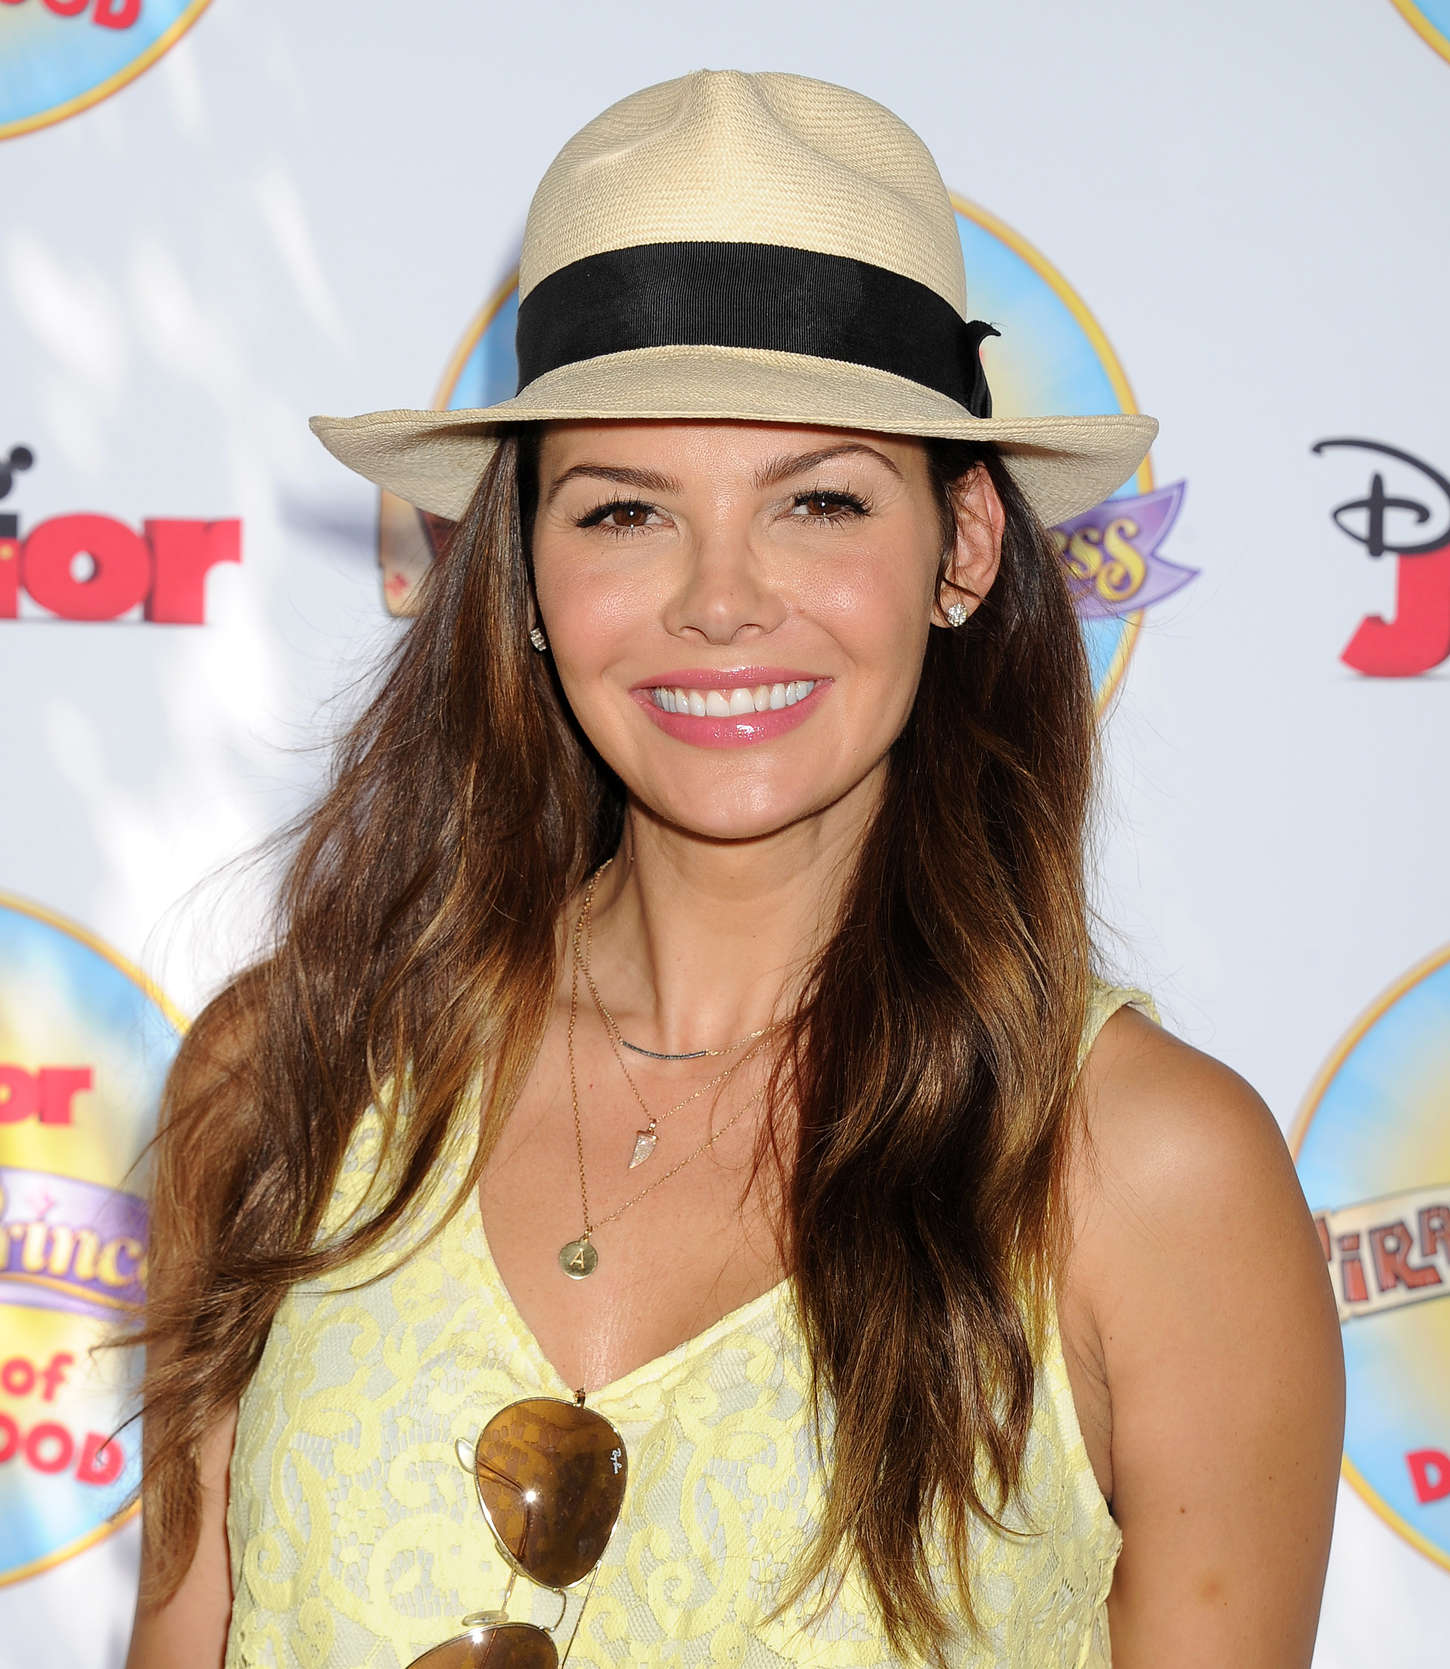 Ali Landry Pirate and Princess Power of Doing Good Tour in Pasadena